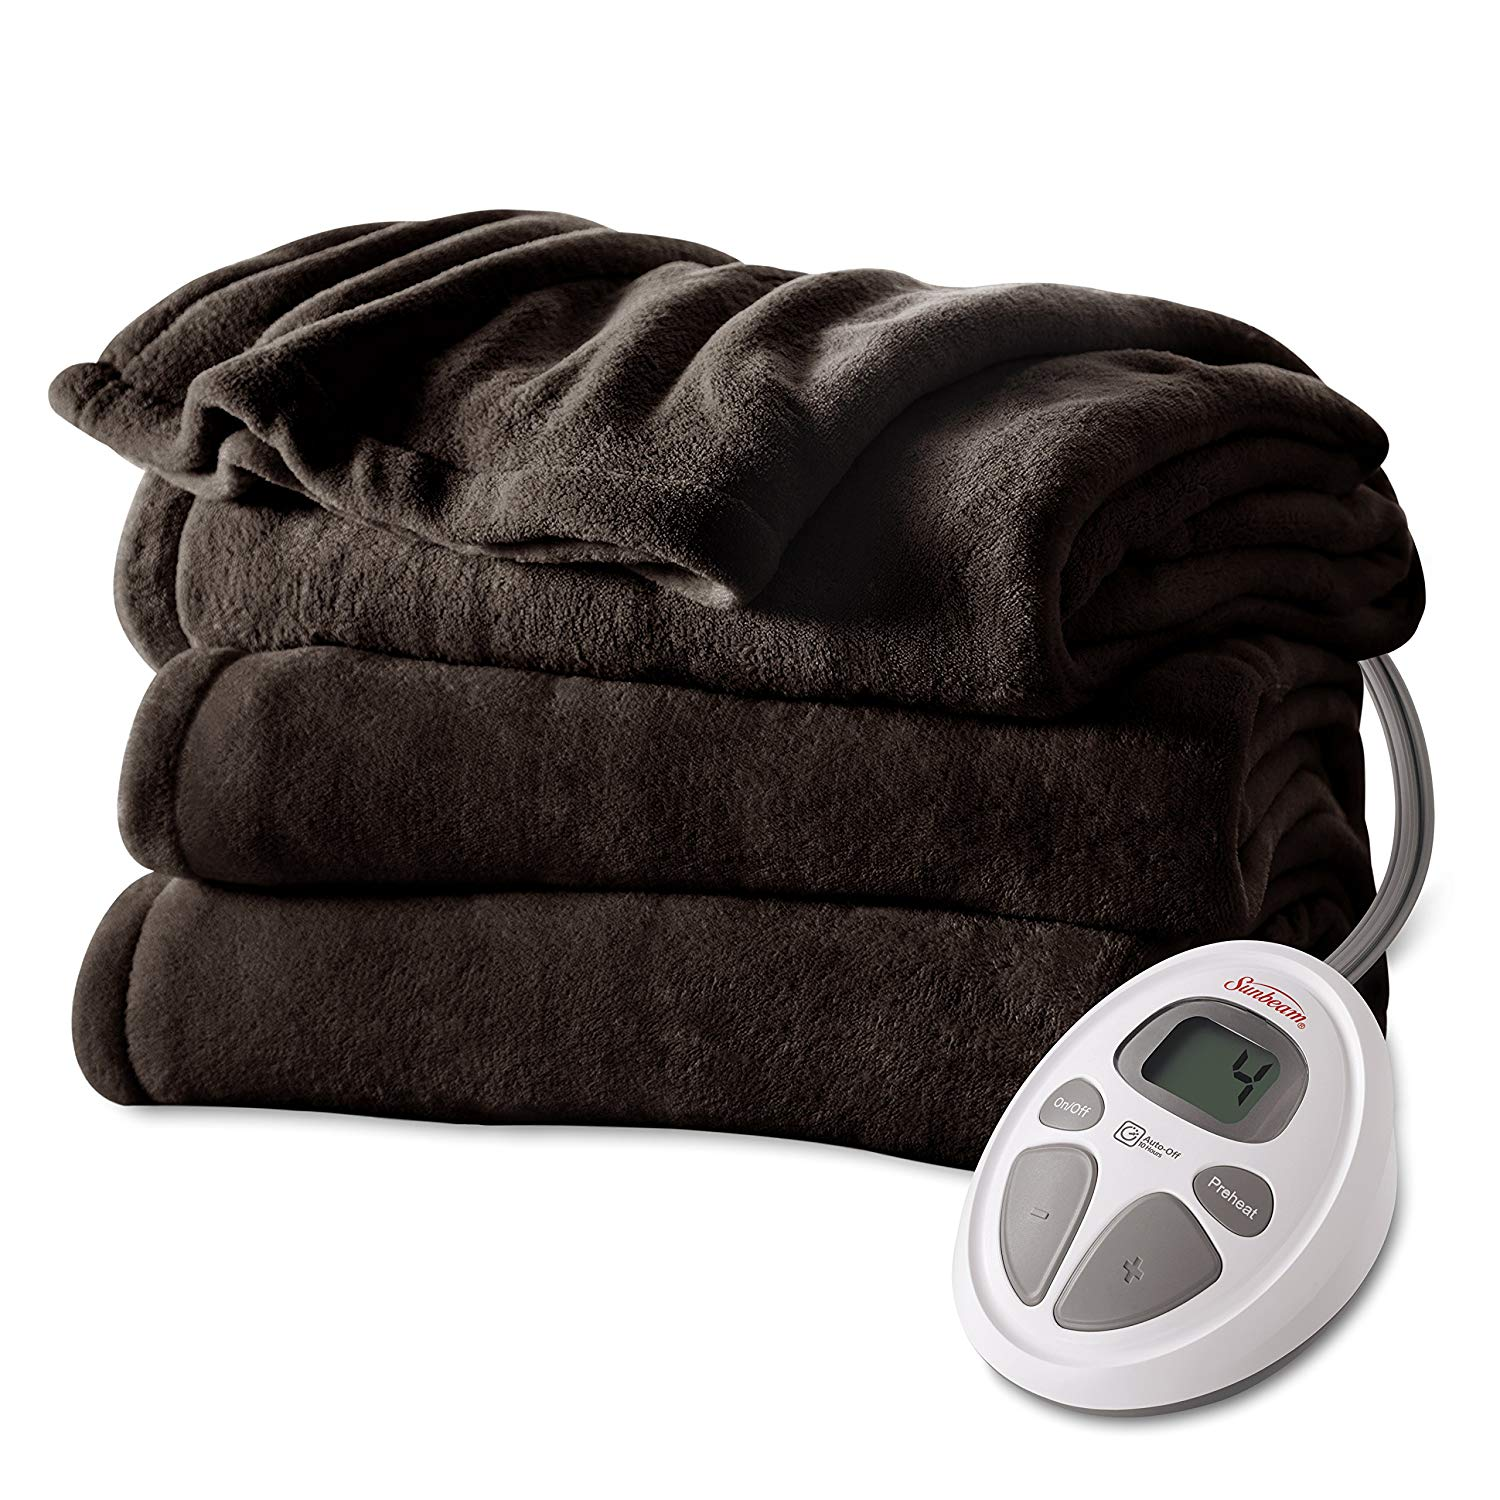 Sunbeam Electric Microplush Heated Blanket, Queen, Walnut (BSM9CQS-R470-12A00)